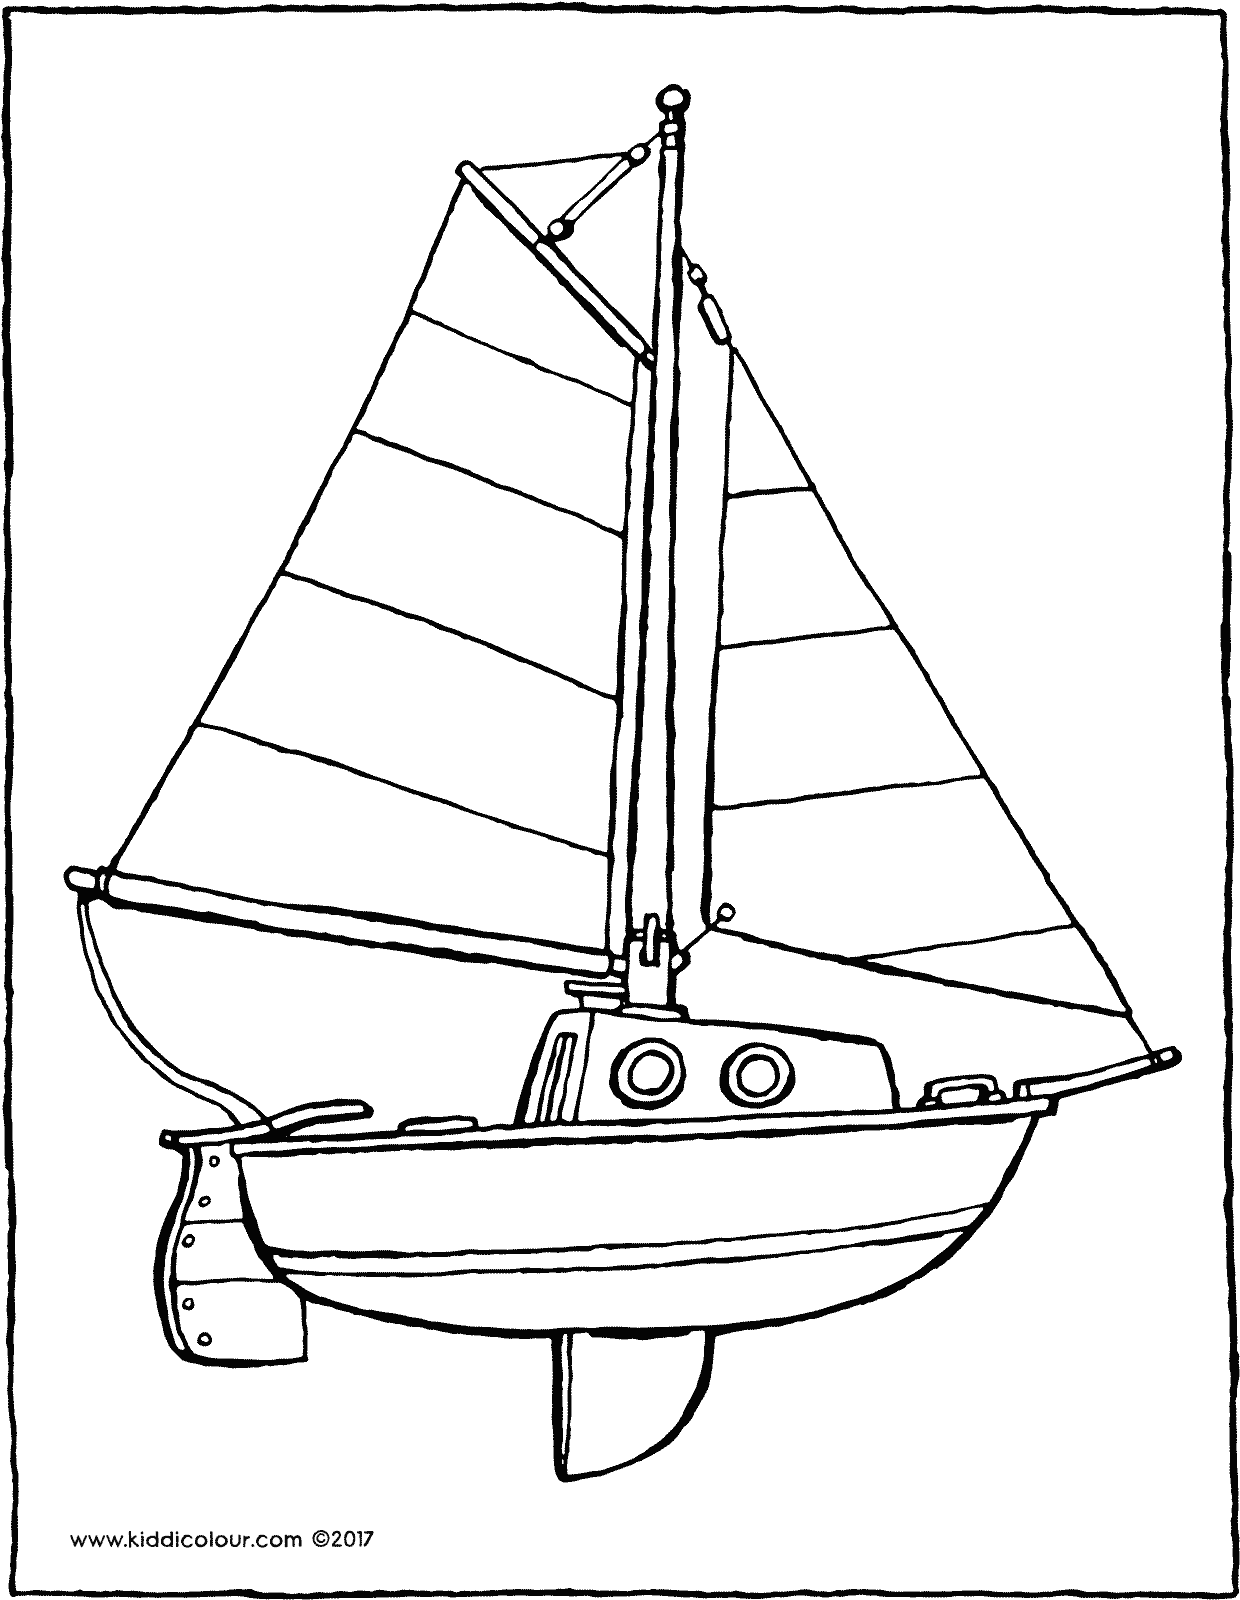 sailboat colouring page 01V